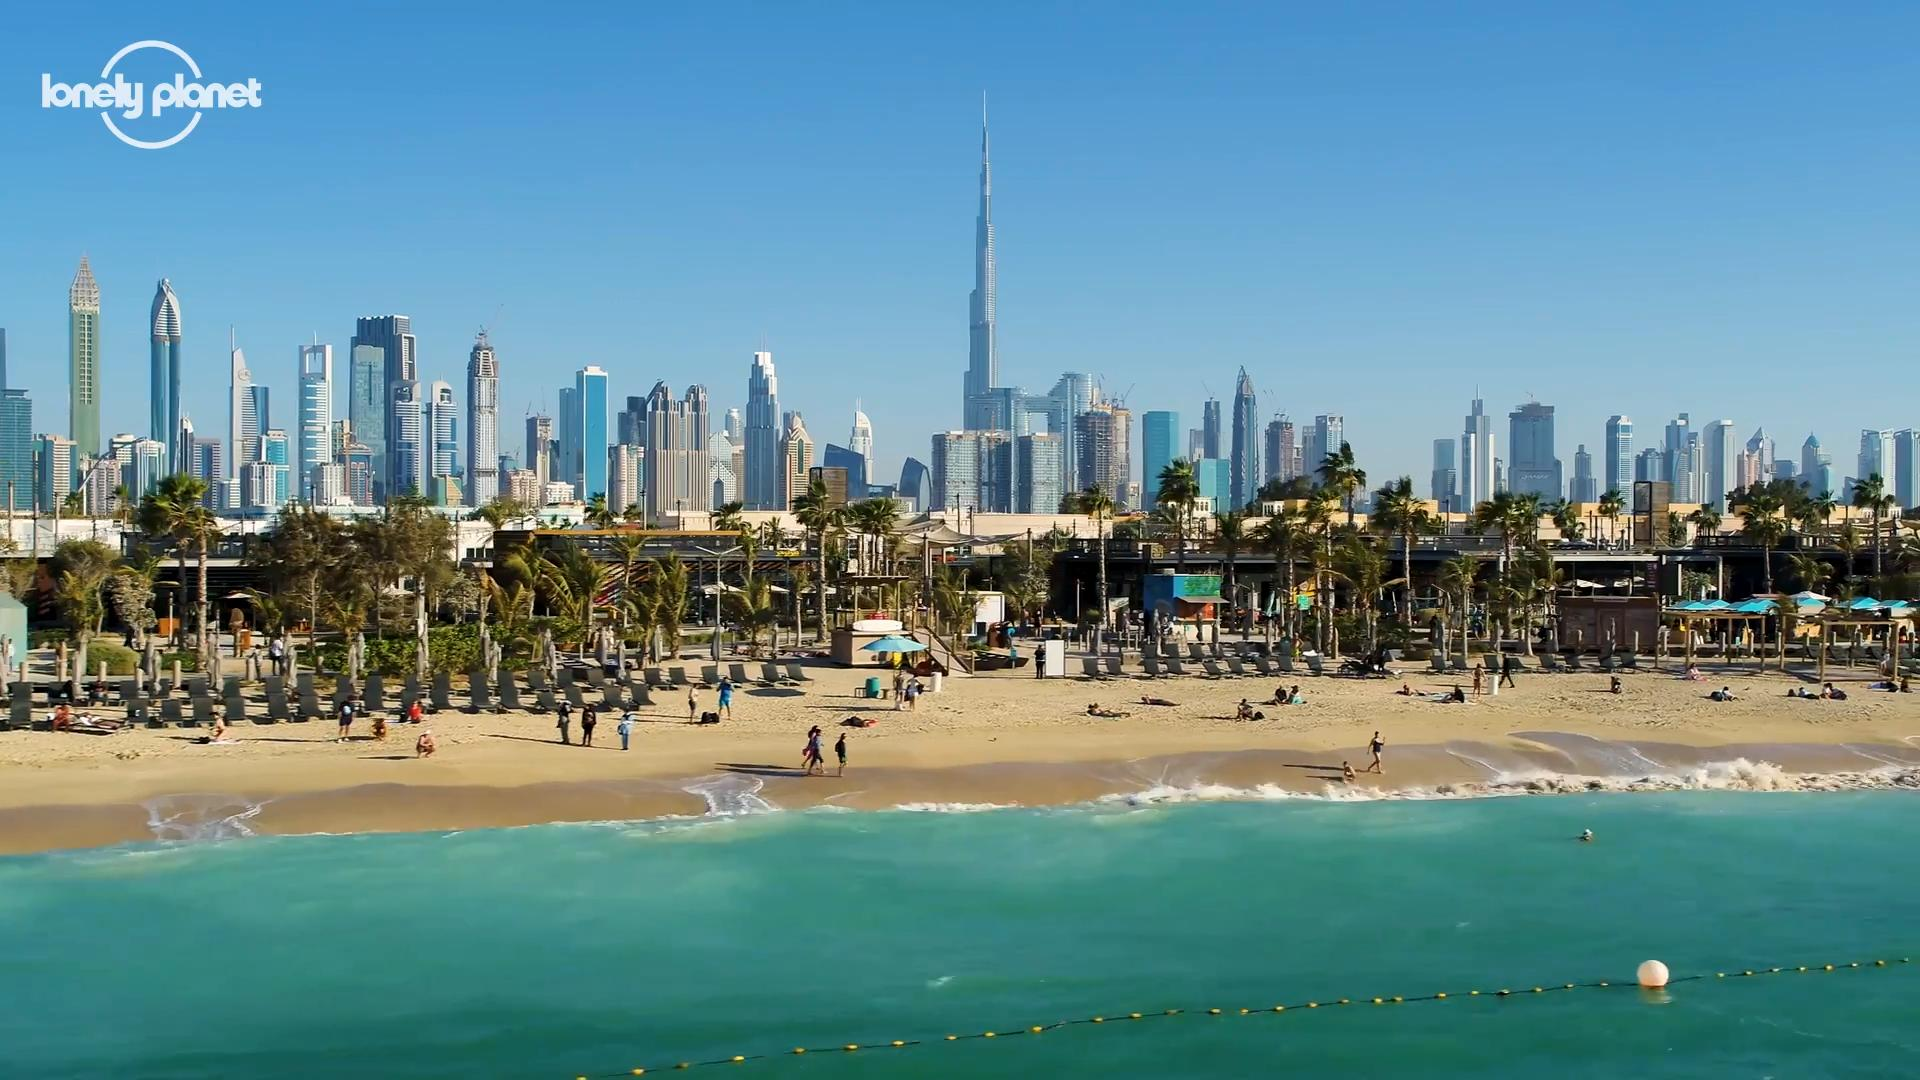 Visit Dubai to see the biggest and best in the world